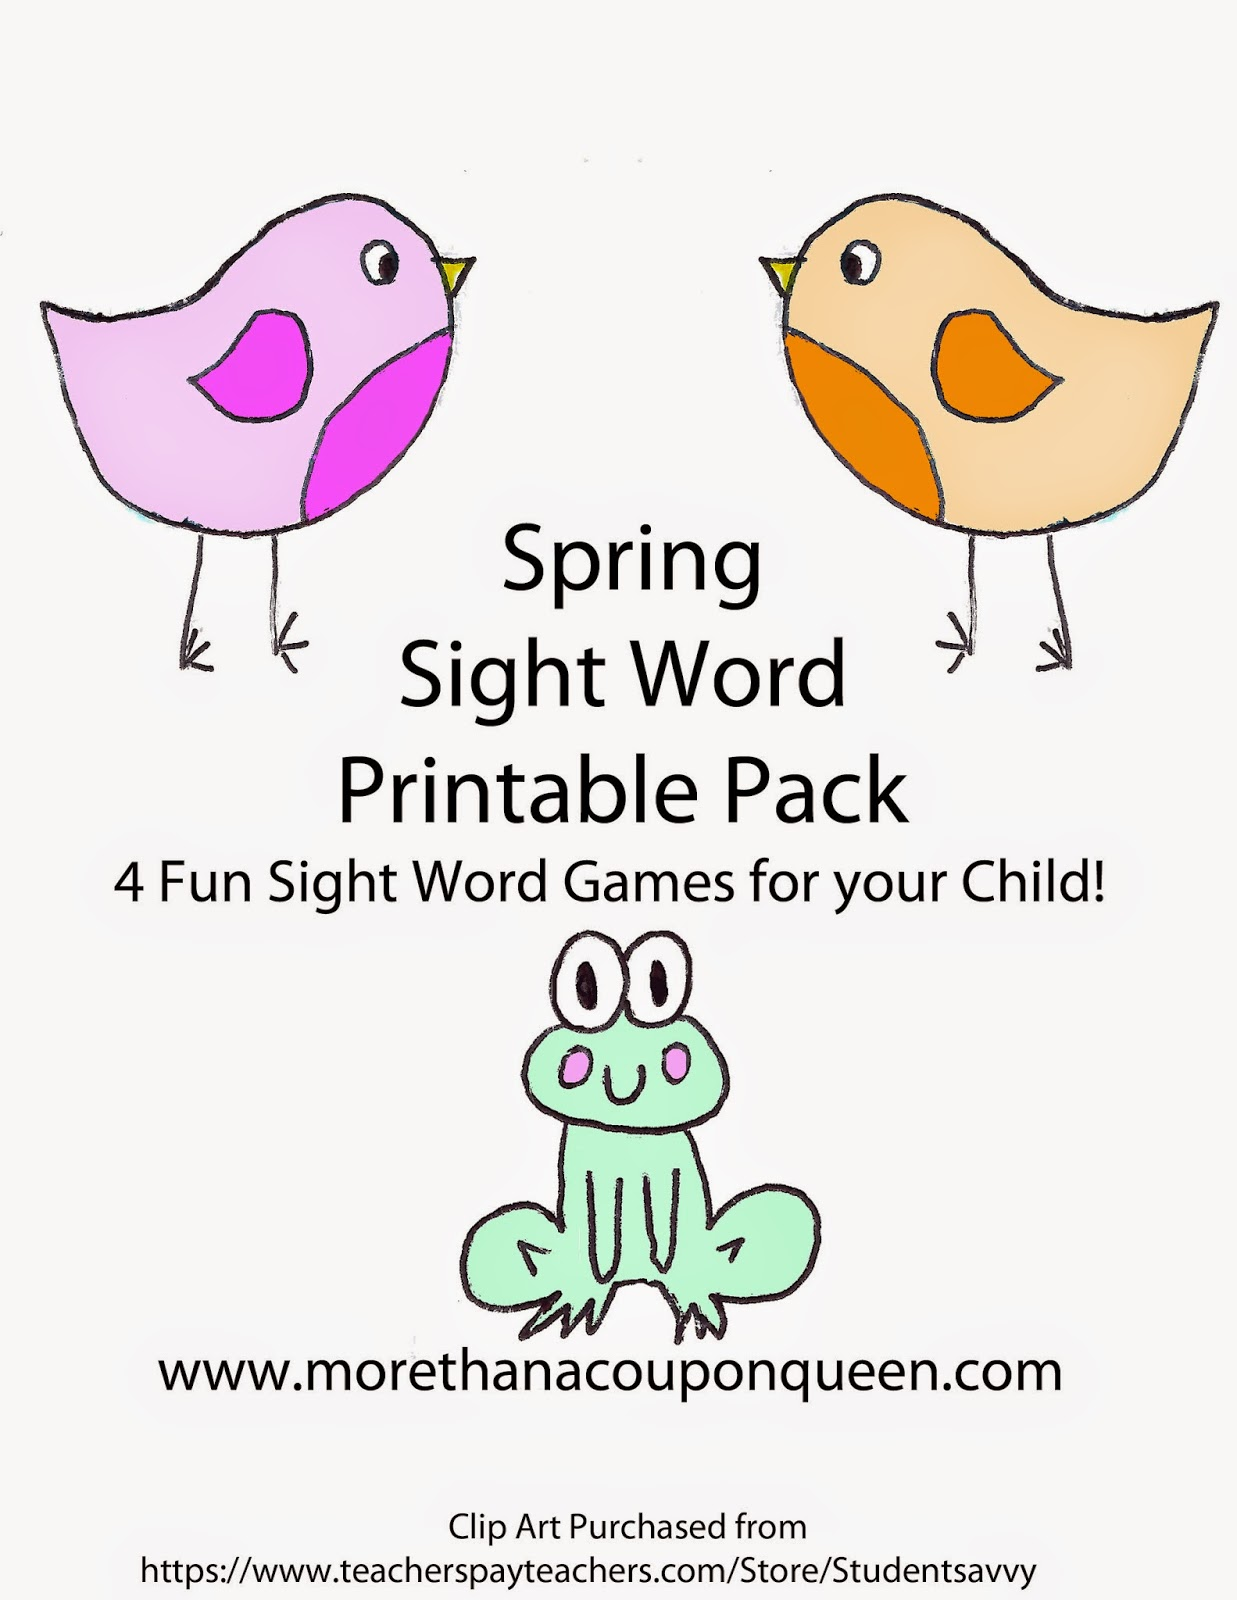 Free Sight Word Games Printable Pack